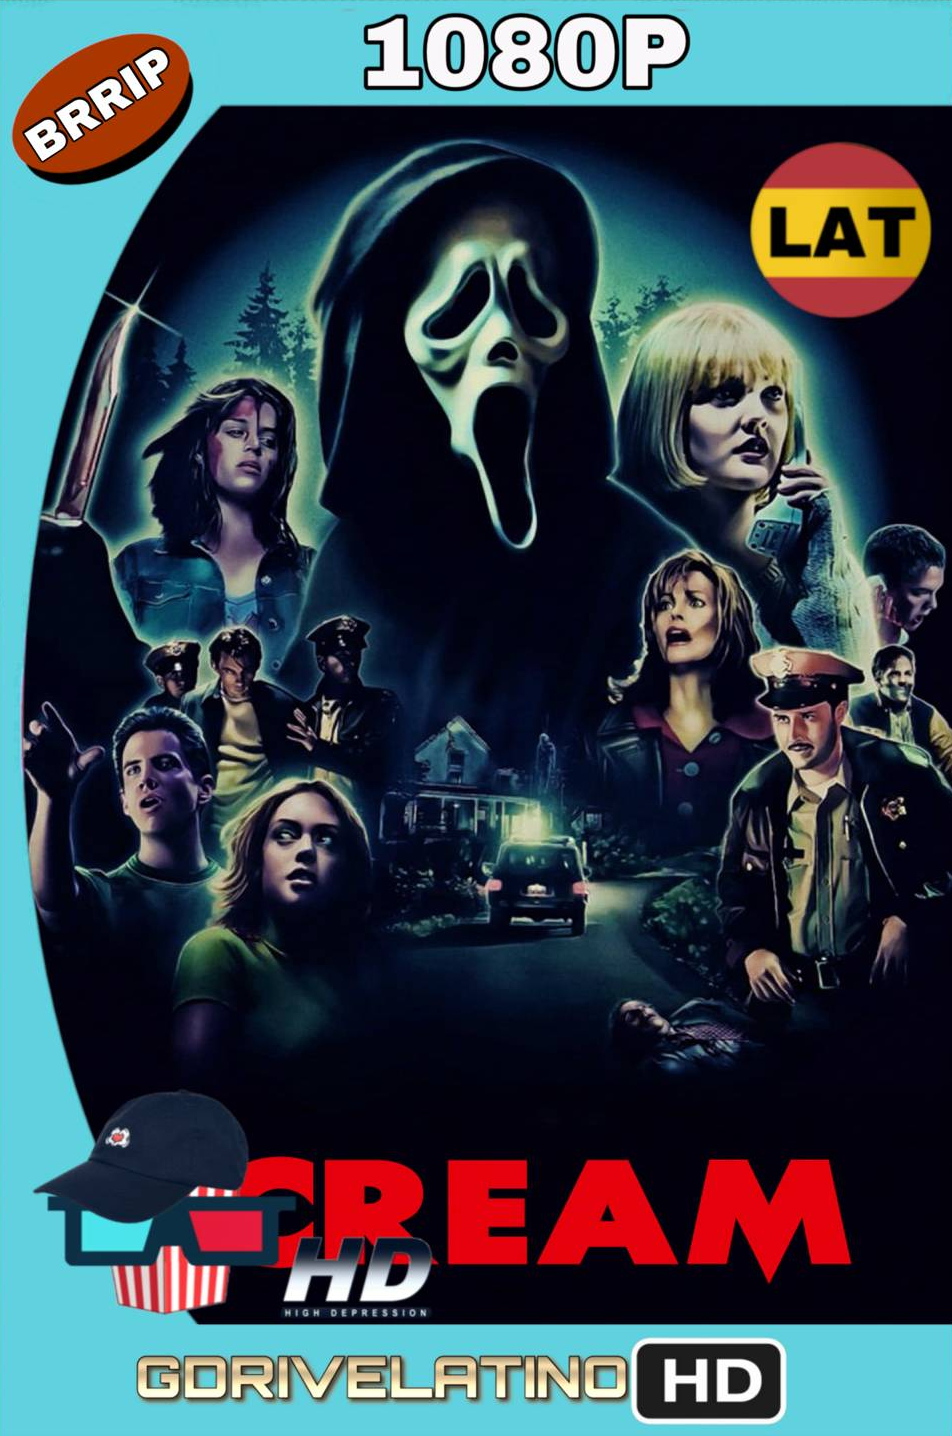 Scream (1996) BRRip 1080p Latino-Ingles MKV